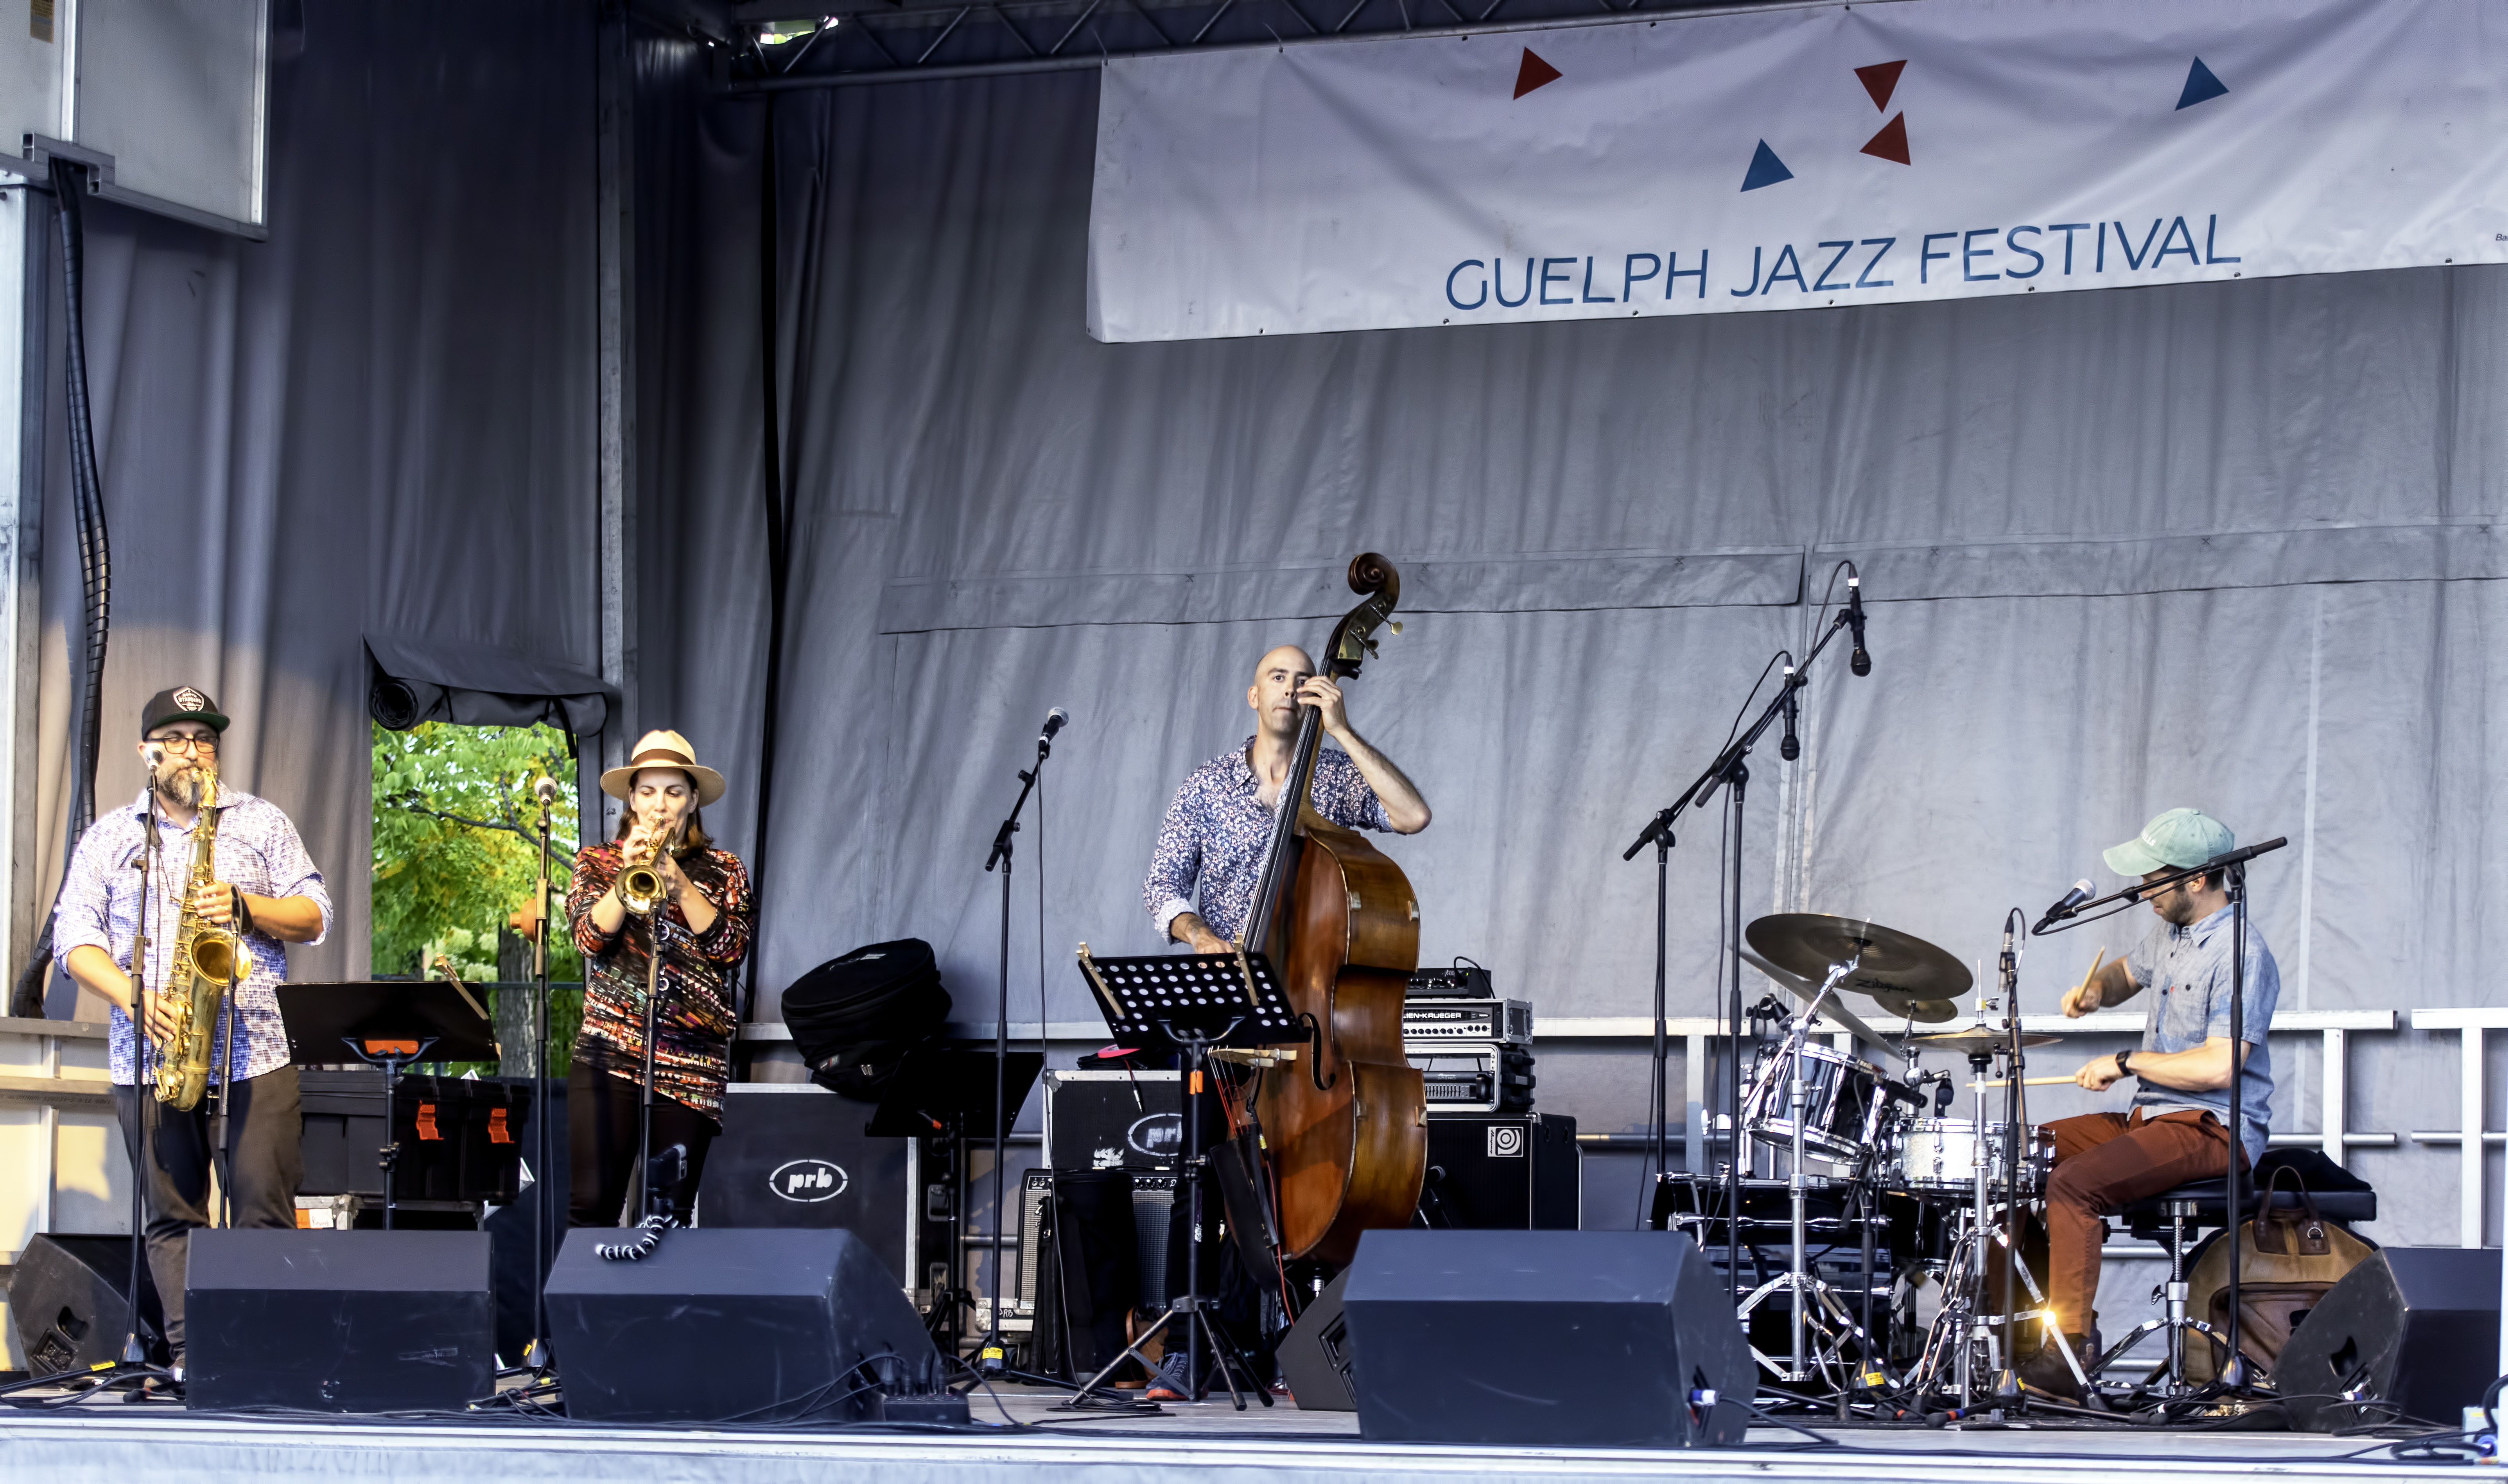 Petr Cancura, Rebecca Hennessy, Michael Herring And Richie Barshay With Way North At The Guelph Jazz Festival 2019